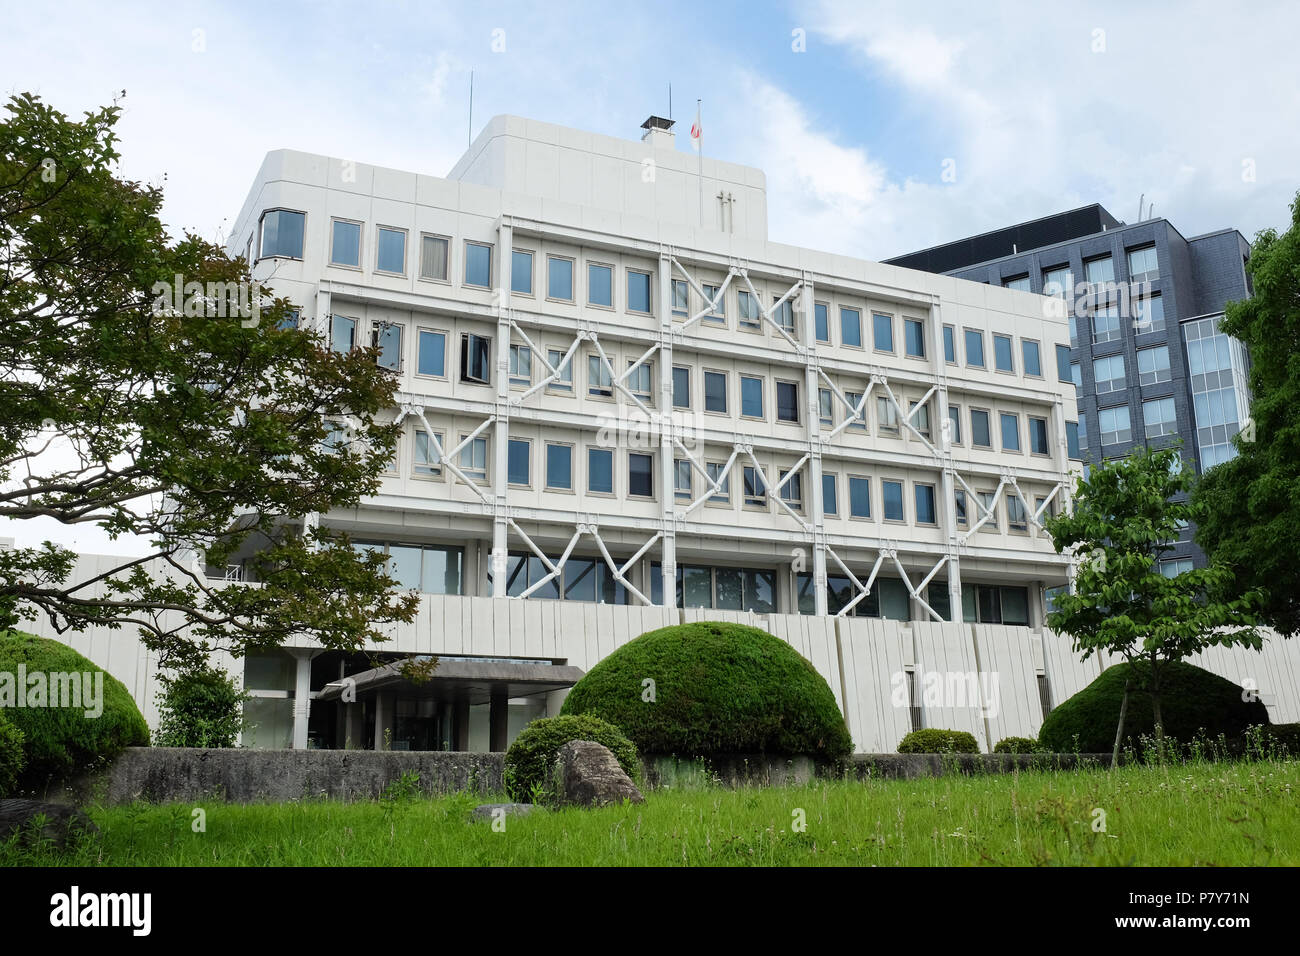 A building in Japan that's designed to withstand earthquakes. - Stock Image